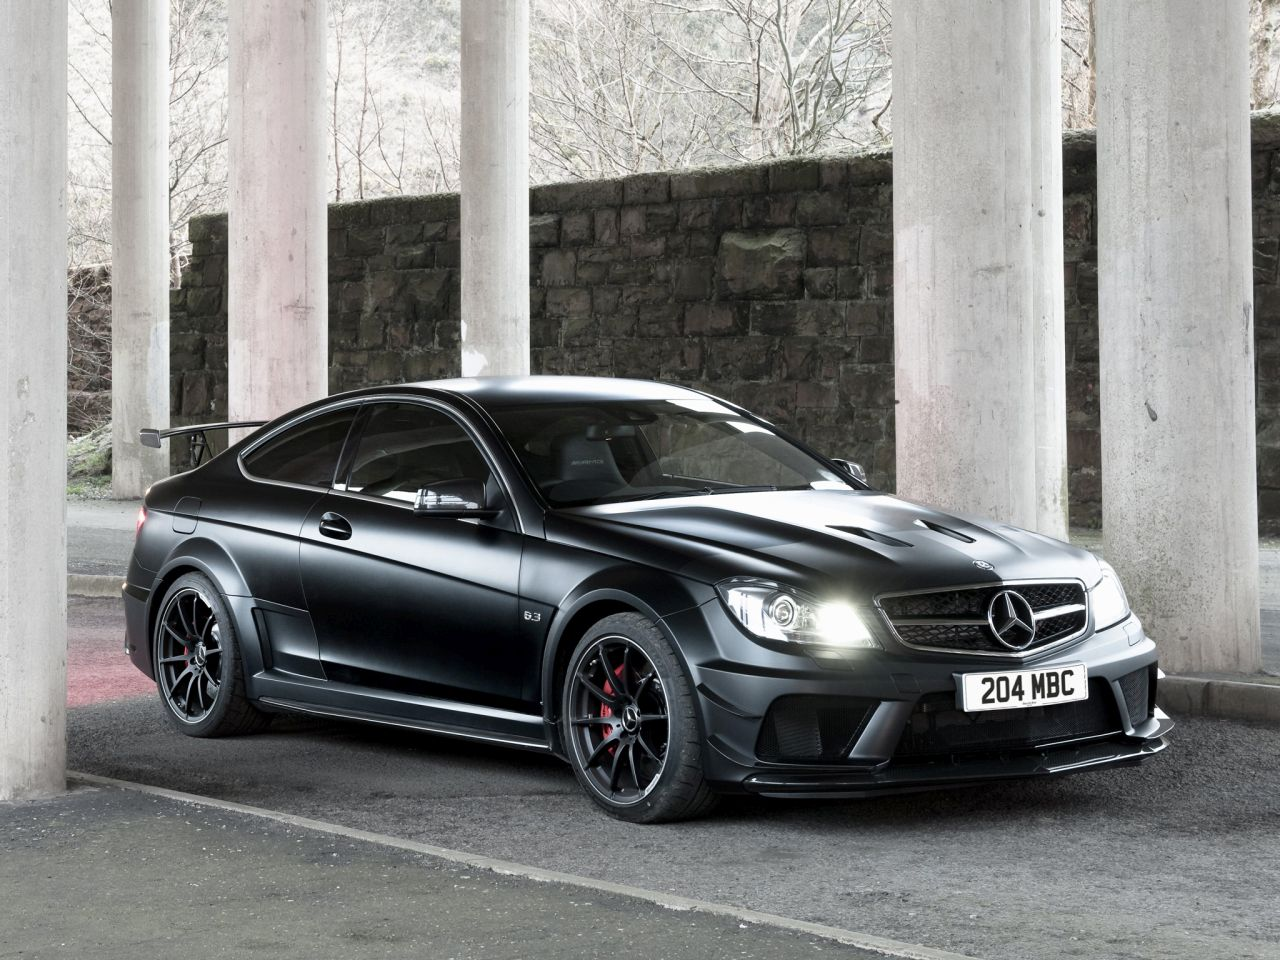 Engine Sound - Mercedes C63 AMG Black Series : Casser la voix 31